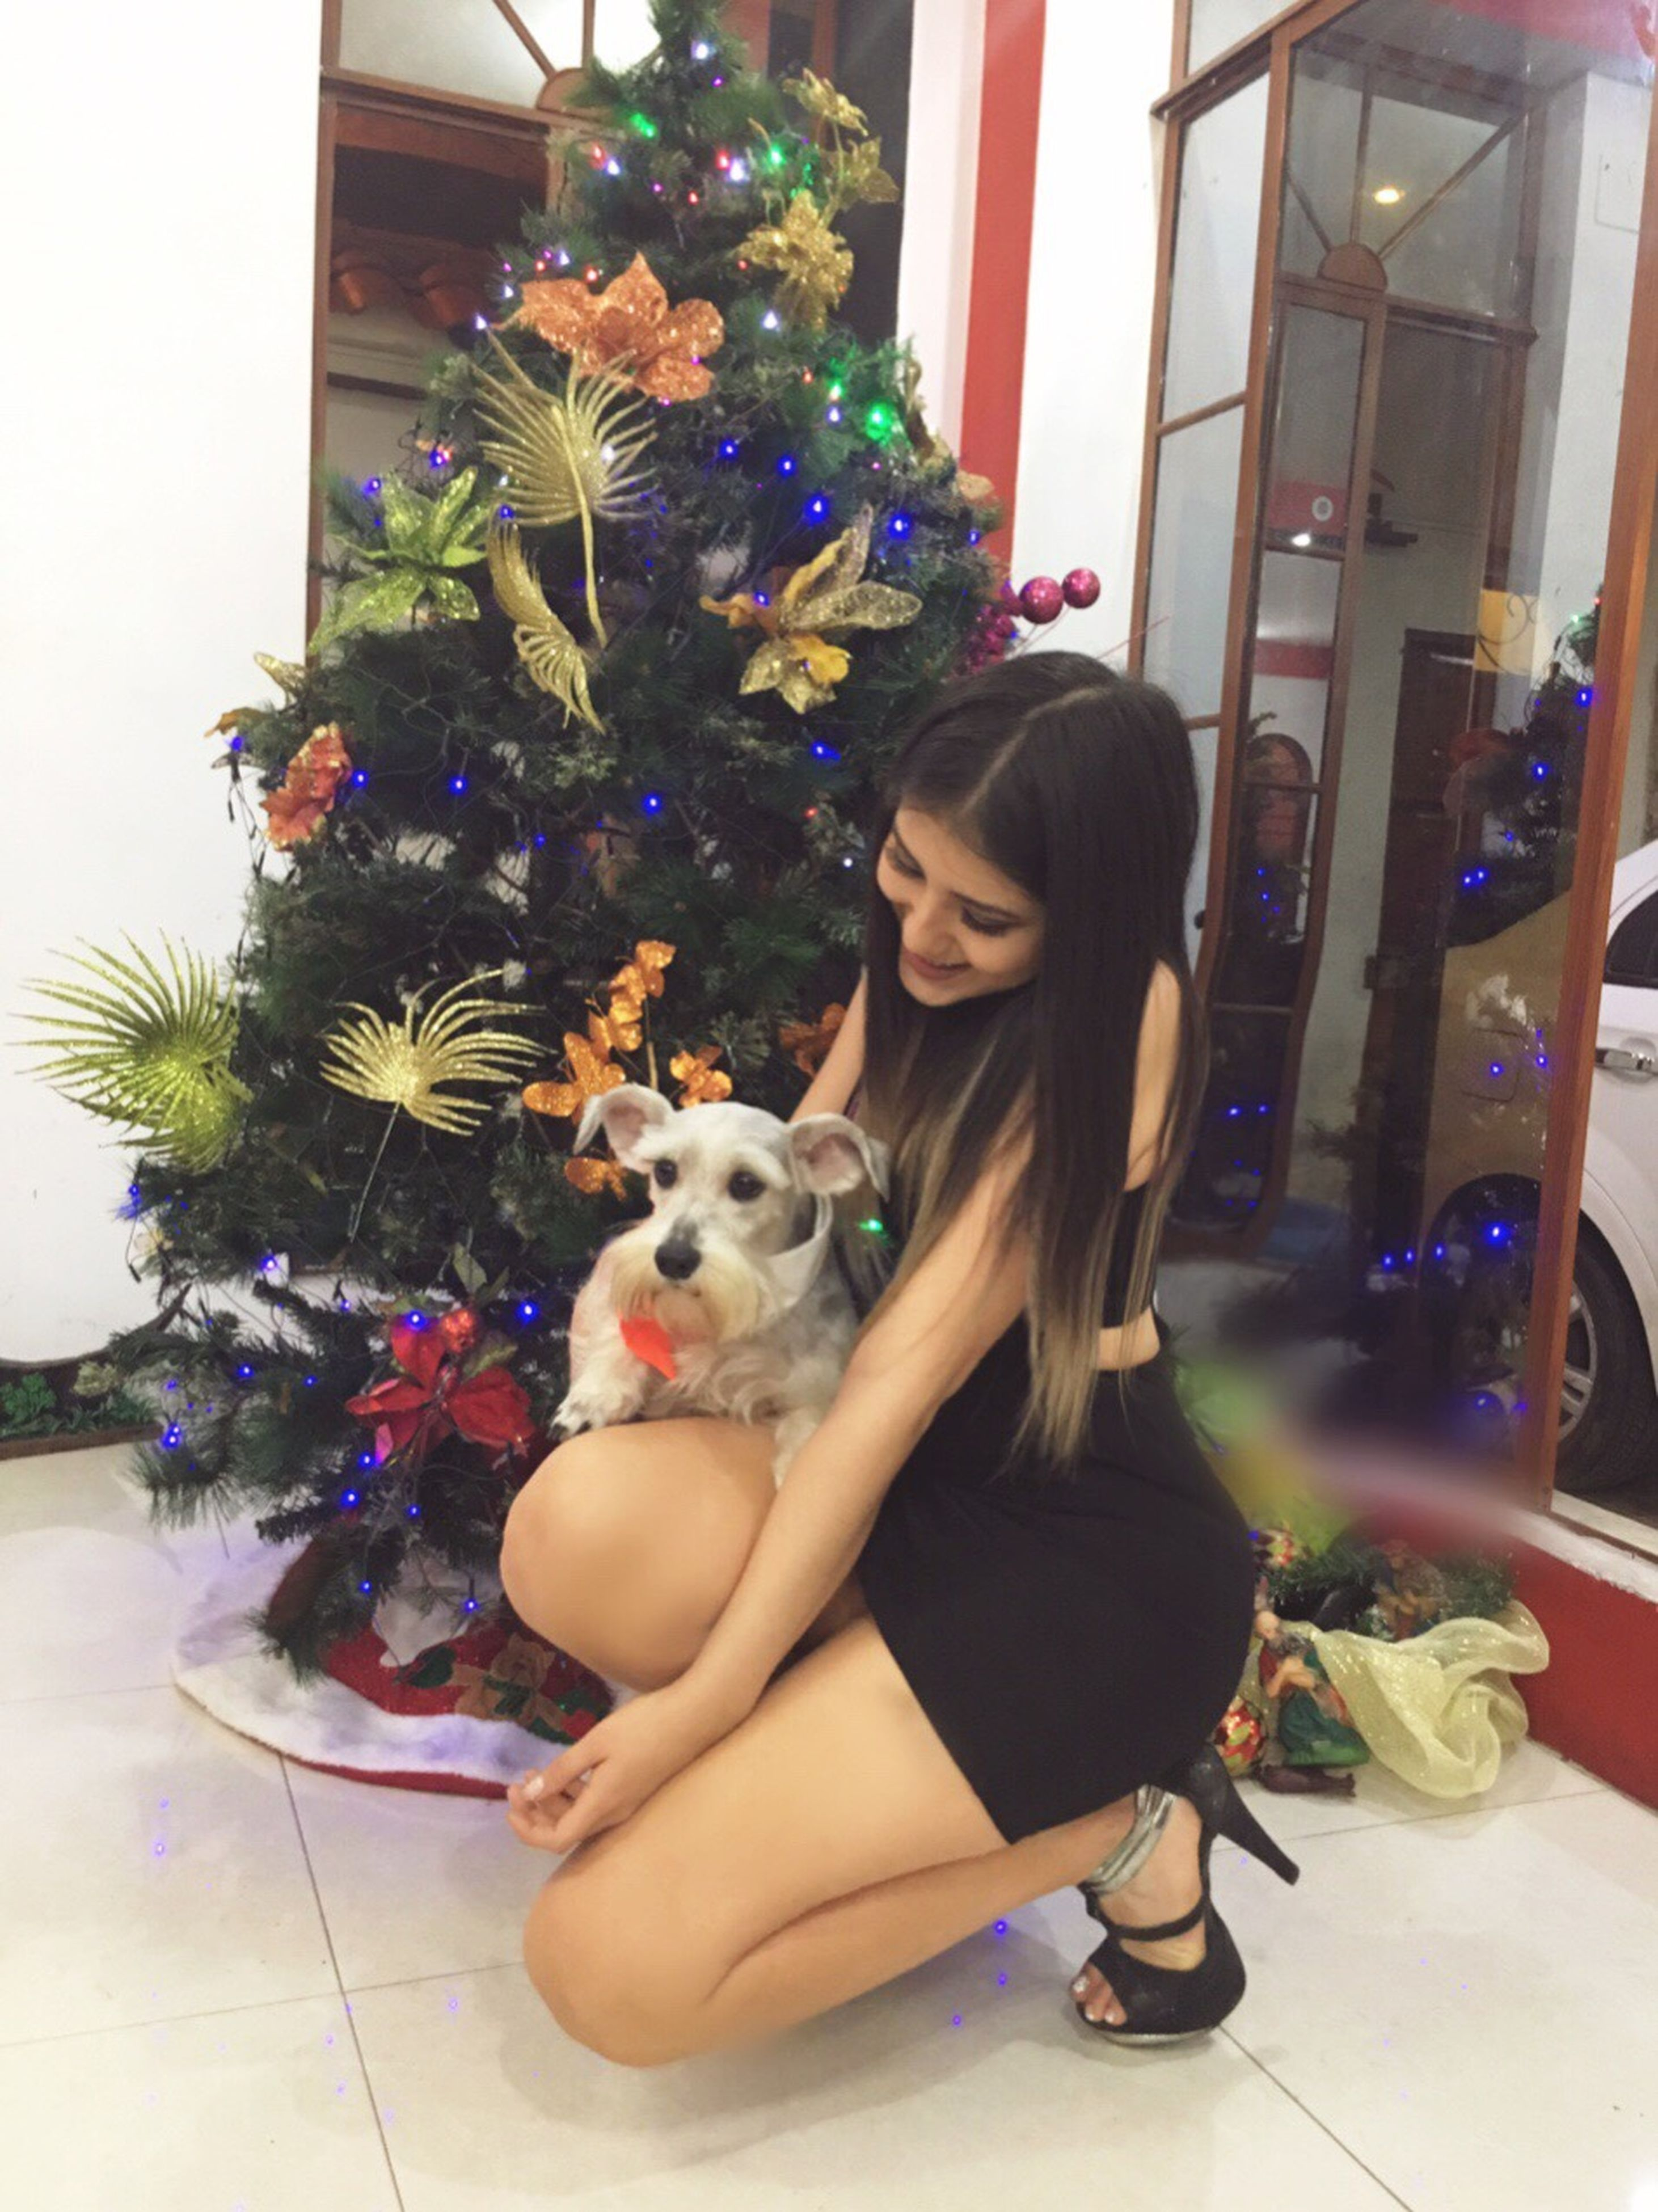 pets, dog, one animal, full length, christmas tree, sitting, christmas, animal, animal themes, tree, domestic animals, indoors, friendship, home interior, puppy, pet owner, one person, people, mammal, pomeranian, day